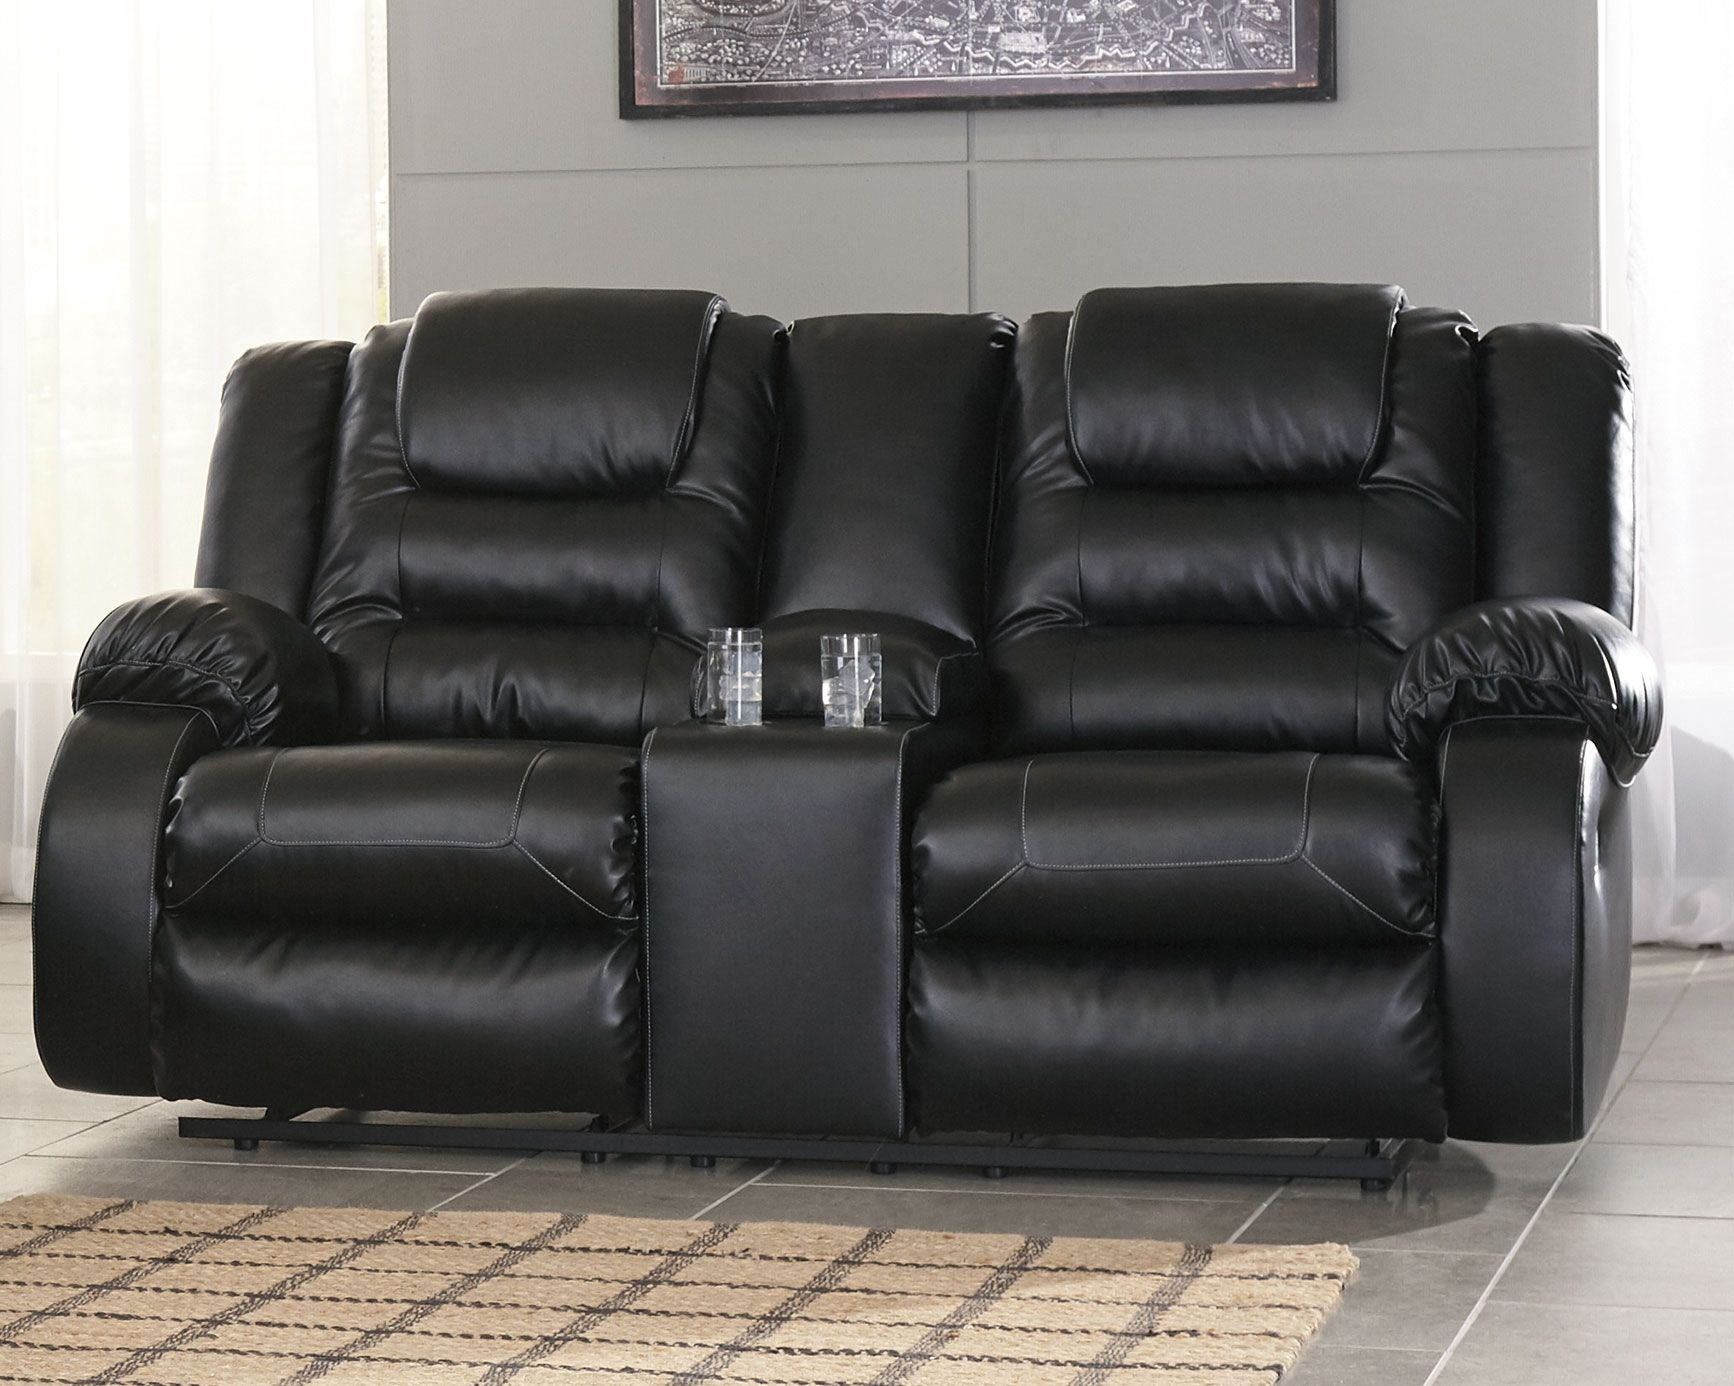 Vacherie Reclining Loveseat with Console in 2019 | Products ...